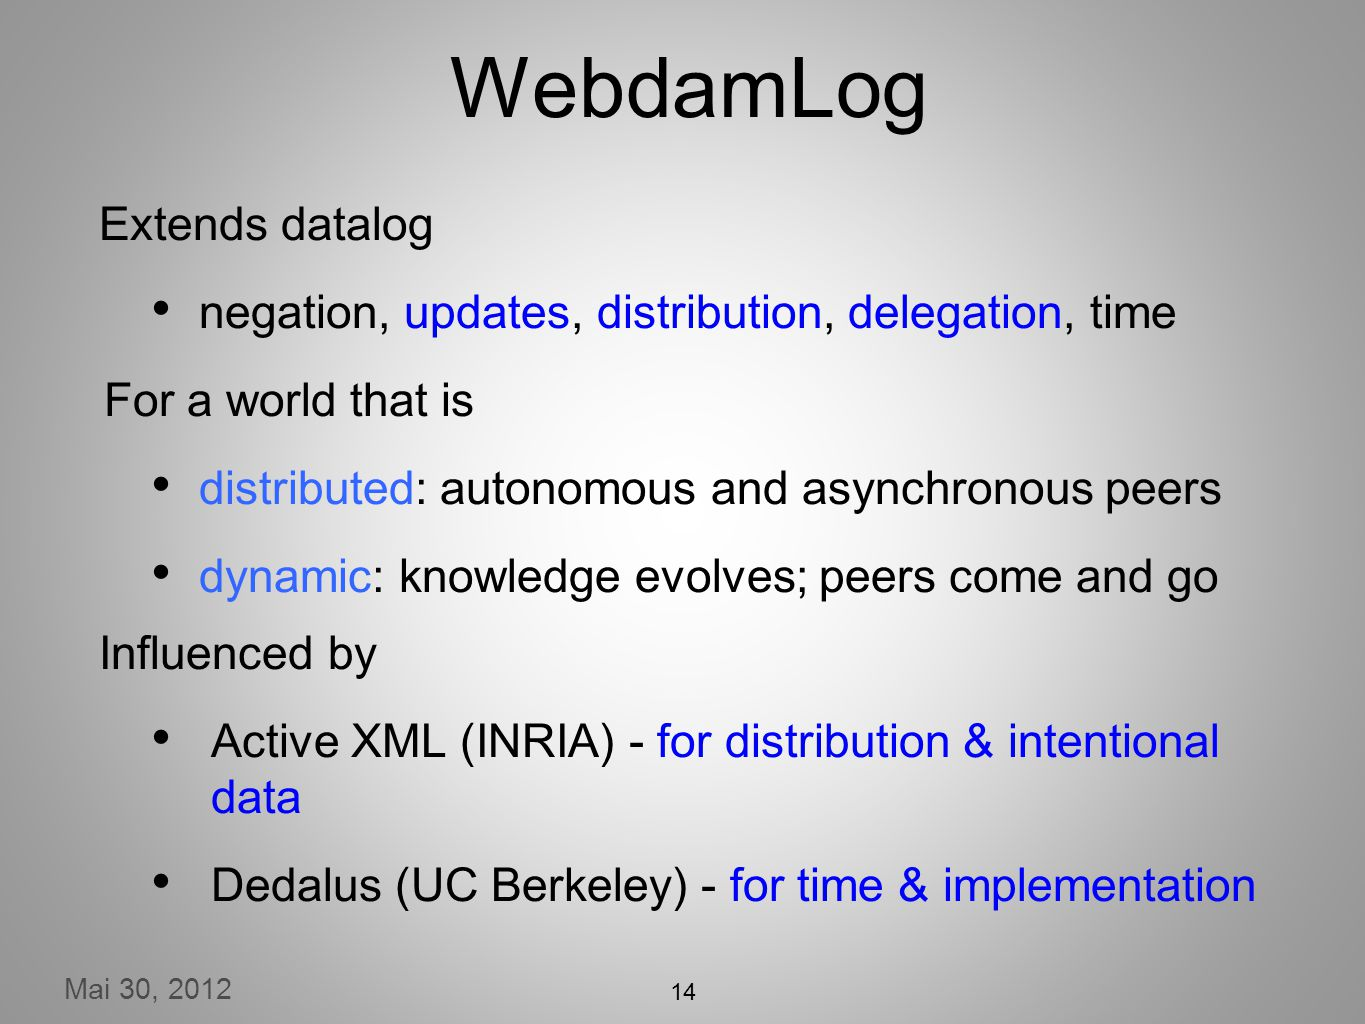 Mai 30, 2012 14 WebdamLog Extends datalog negation, updates, distribution, delegation, time For a world that is distributed: autonomous and asynchronous peers dynamic: knowledge evolves; peers come and go Influenced by Active XML (INRIA) - for distribution & intentional data Dedalus (UC Berkeley) - for time & implementation